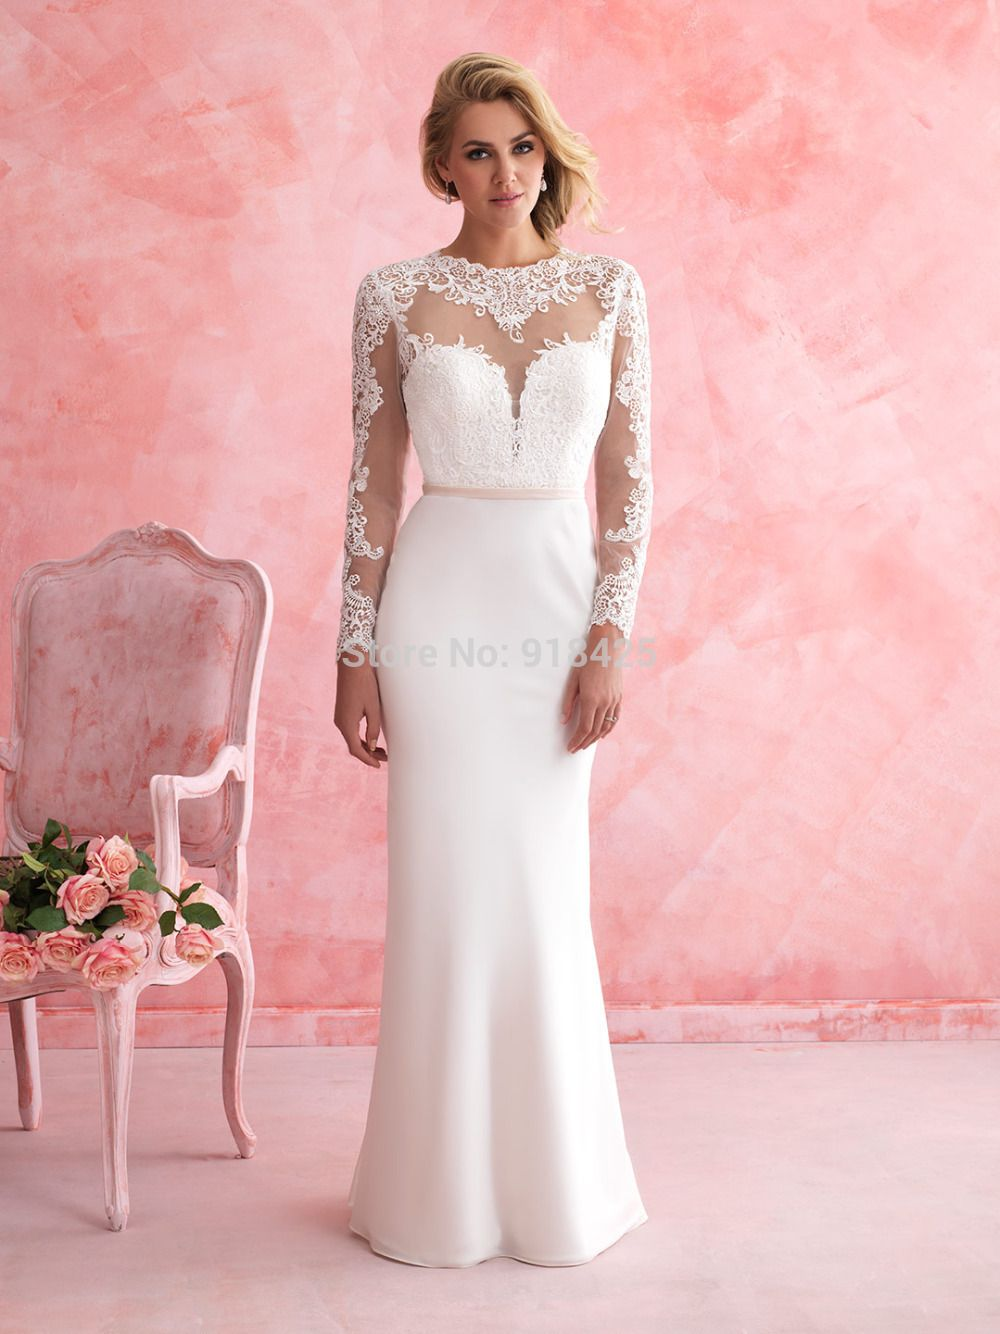 Long wedding reception dresses for the bride  Click to Buy ucuc New Fashion High Neck Sheath Long Sleeves Bridal